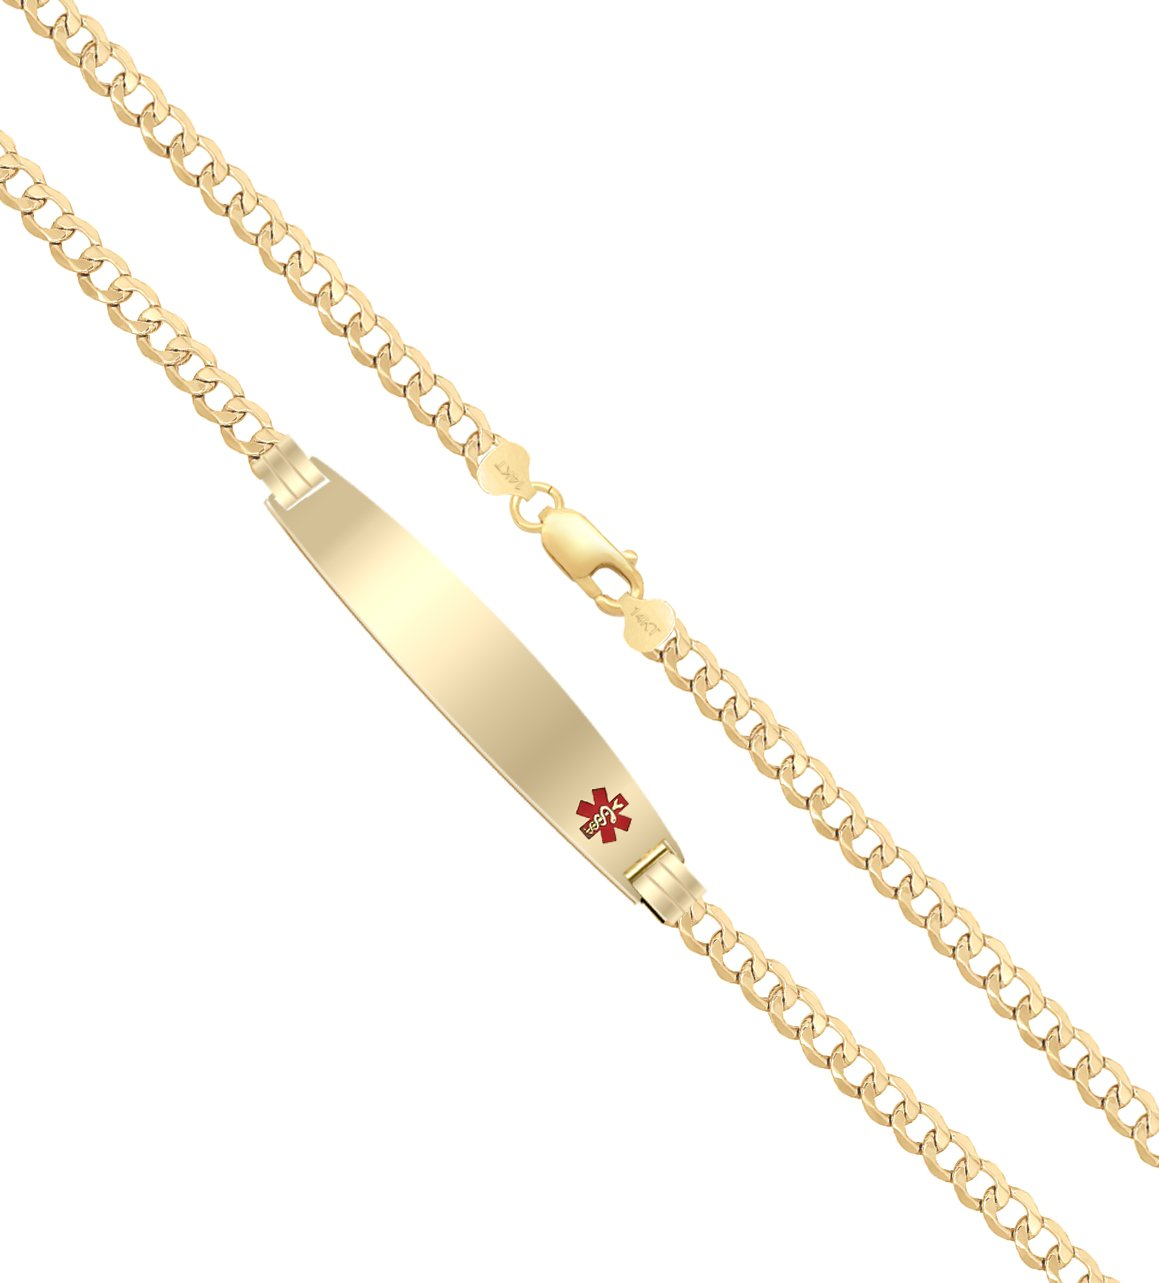 US Jewels And Gems Customizable Ladies 14k Yellow Gold 4mm Curb Medical Alert ID Bracelet with Free Engraving, 6.5in